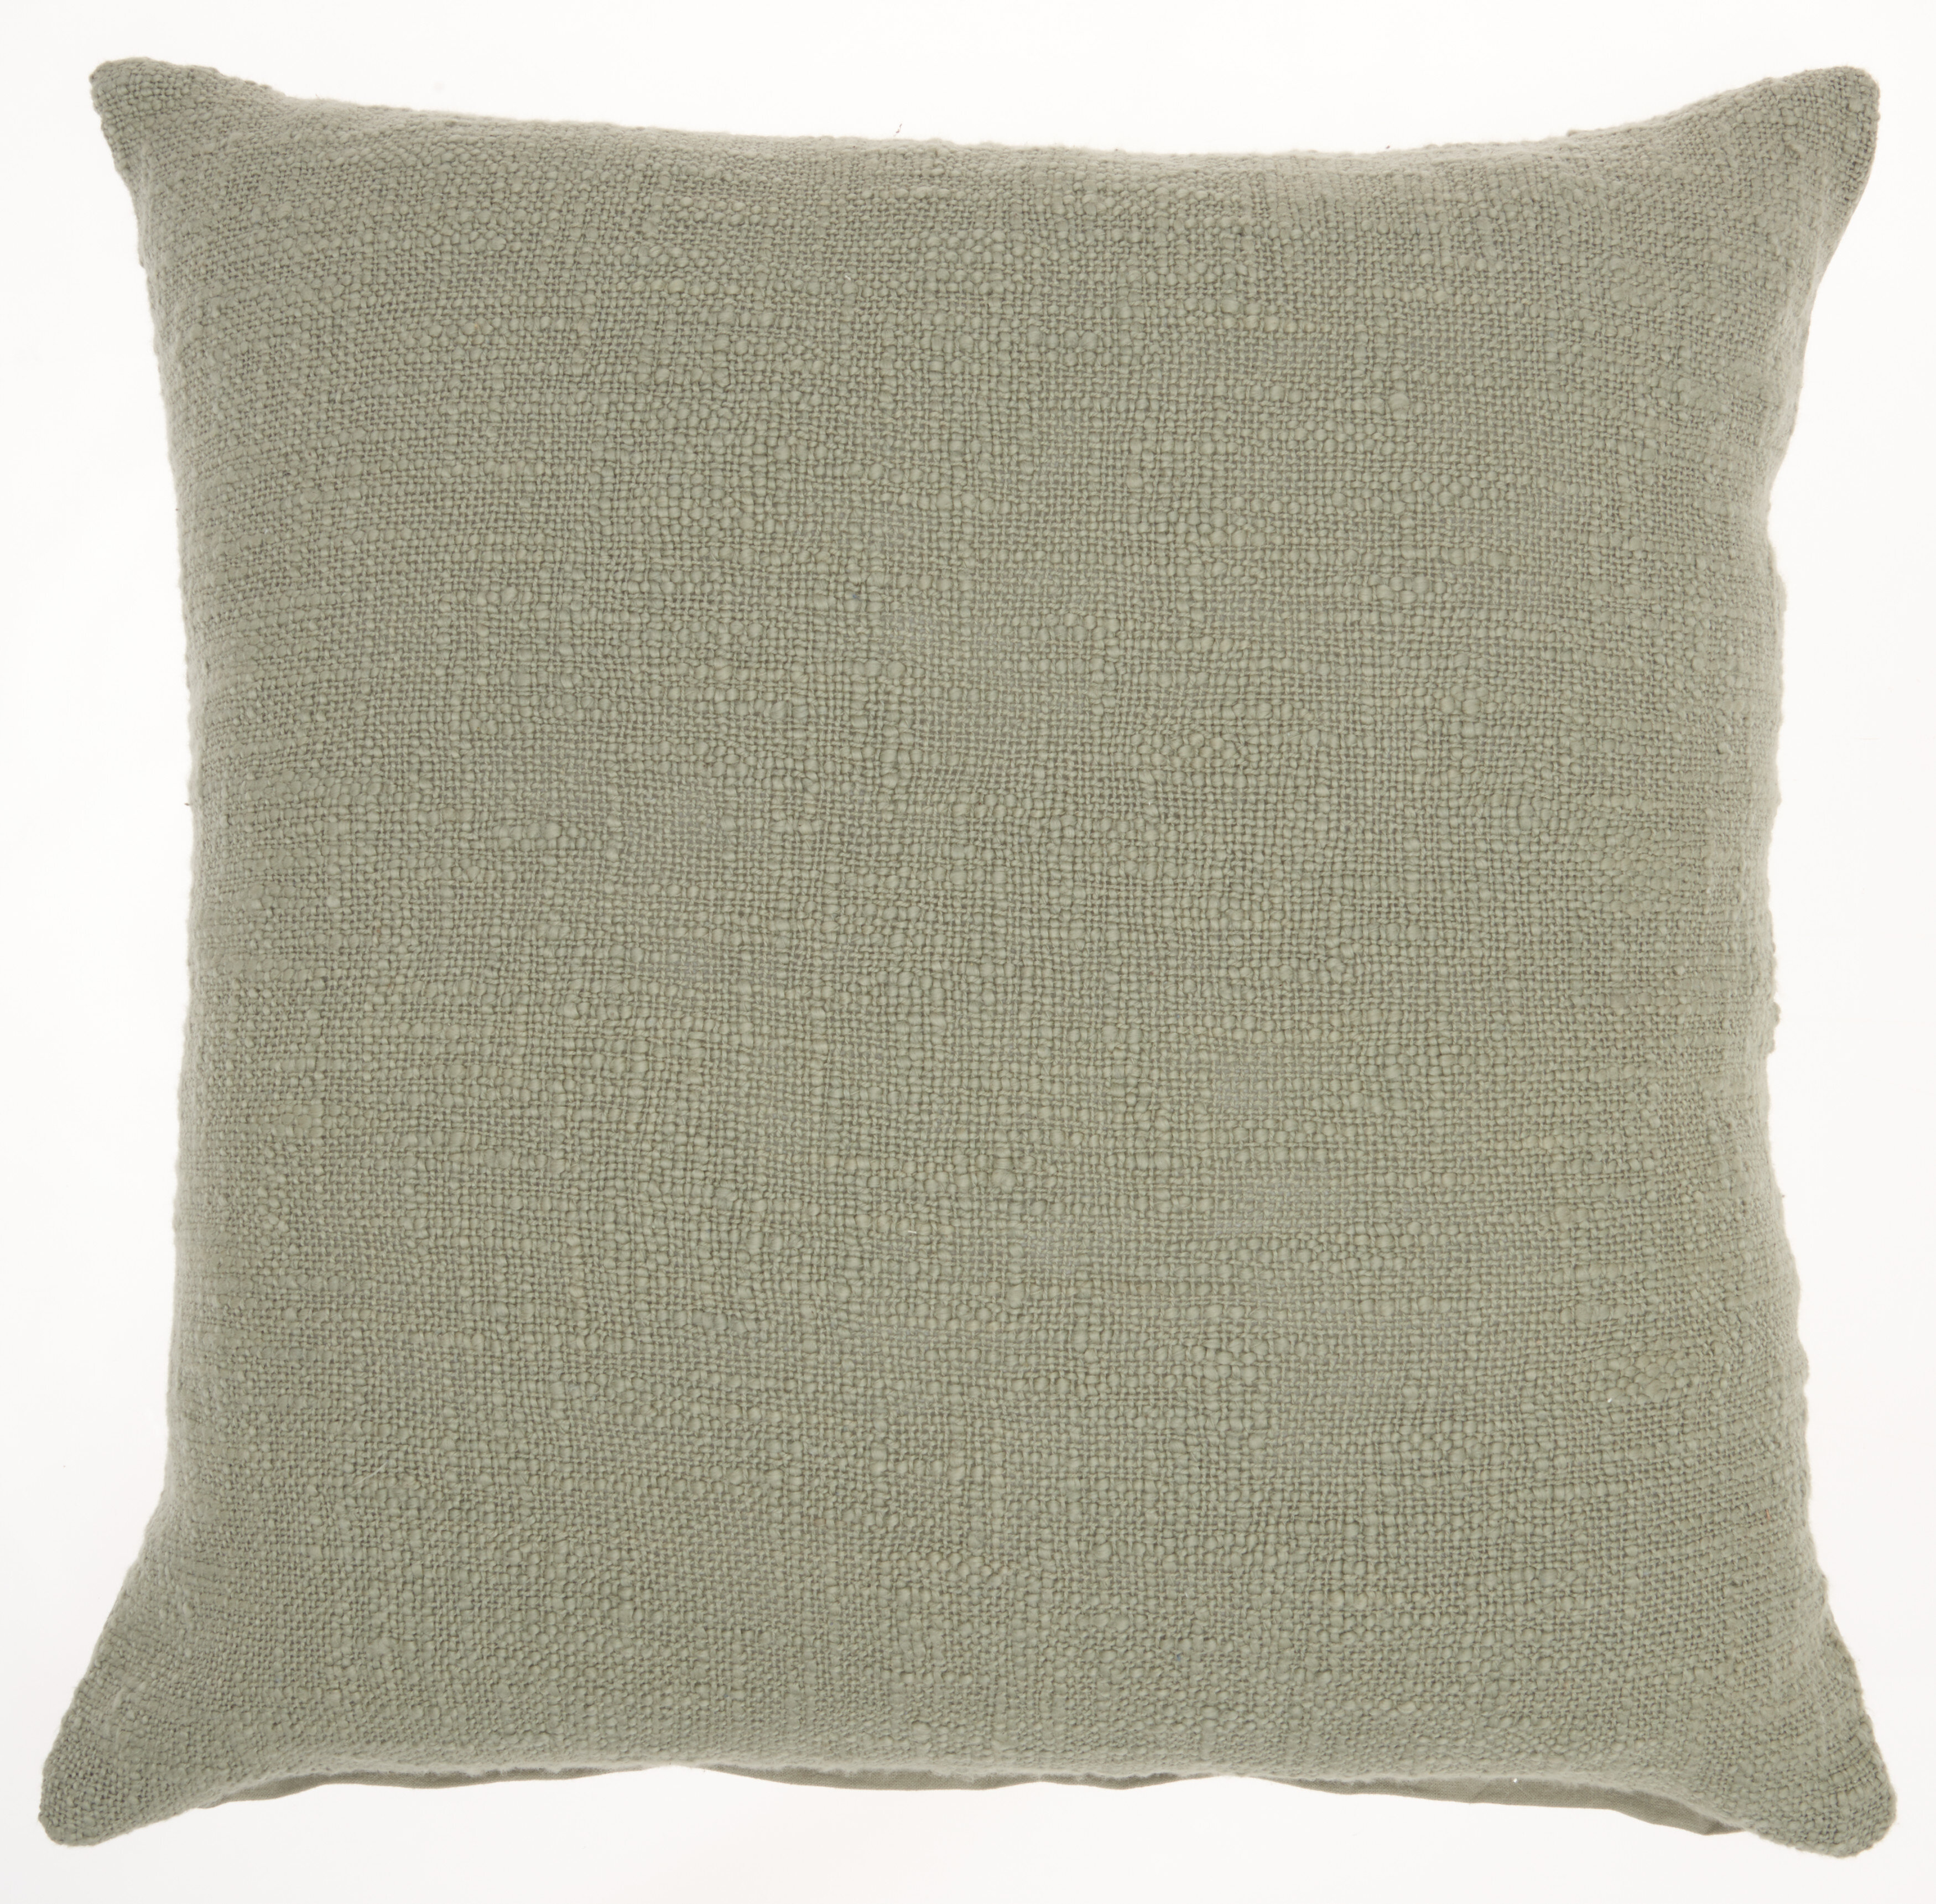 Modern Green Throw Pillows Allmodern